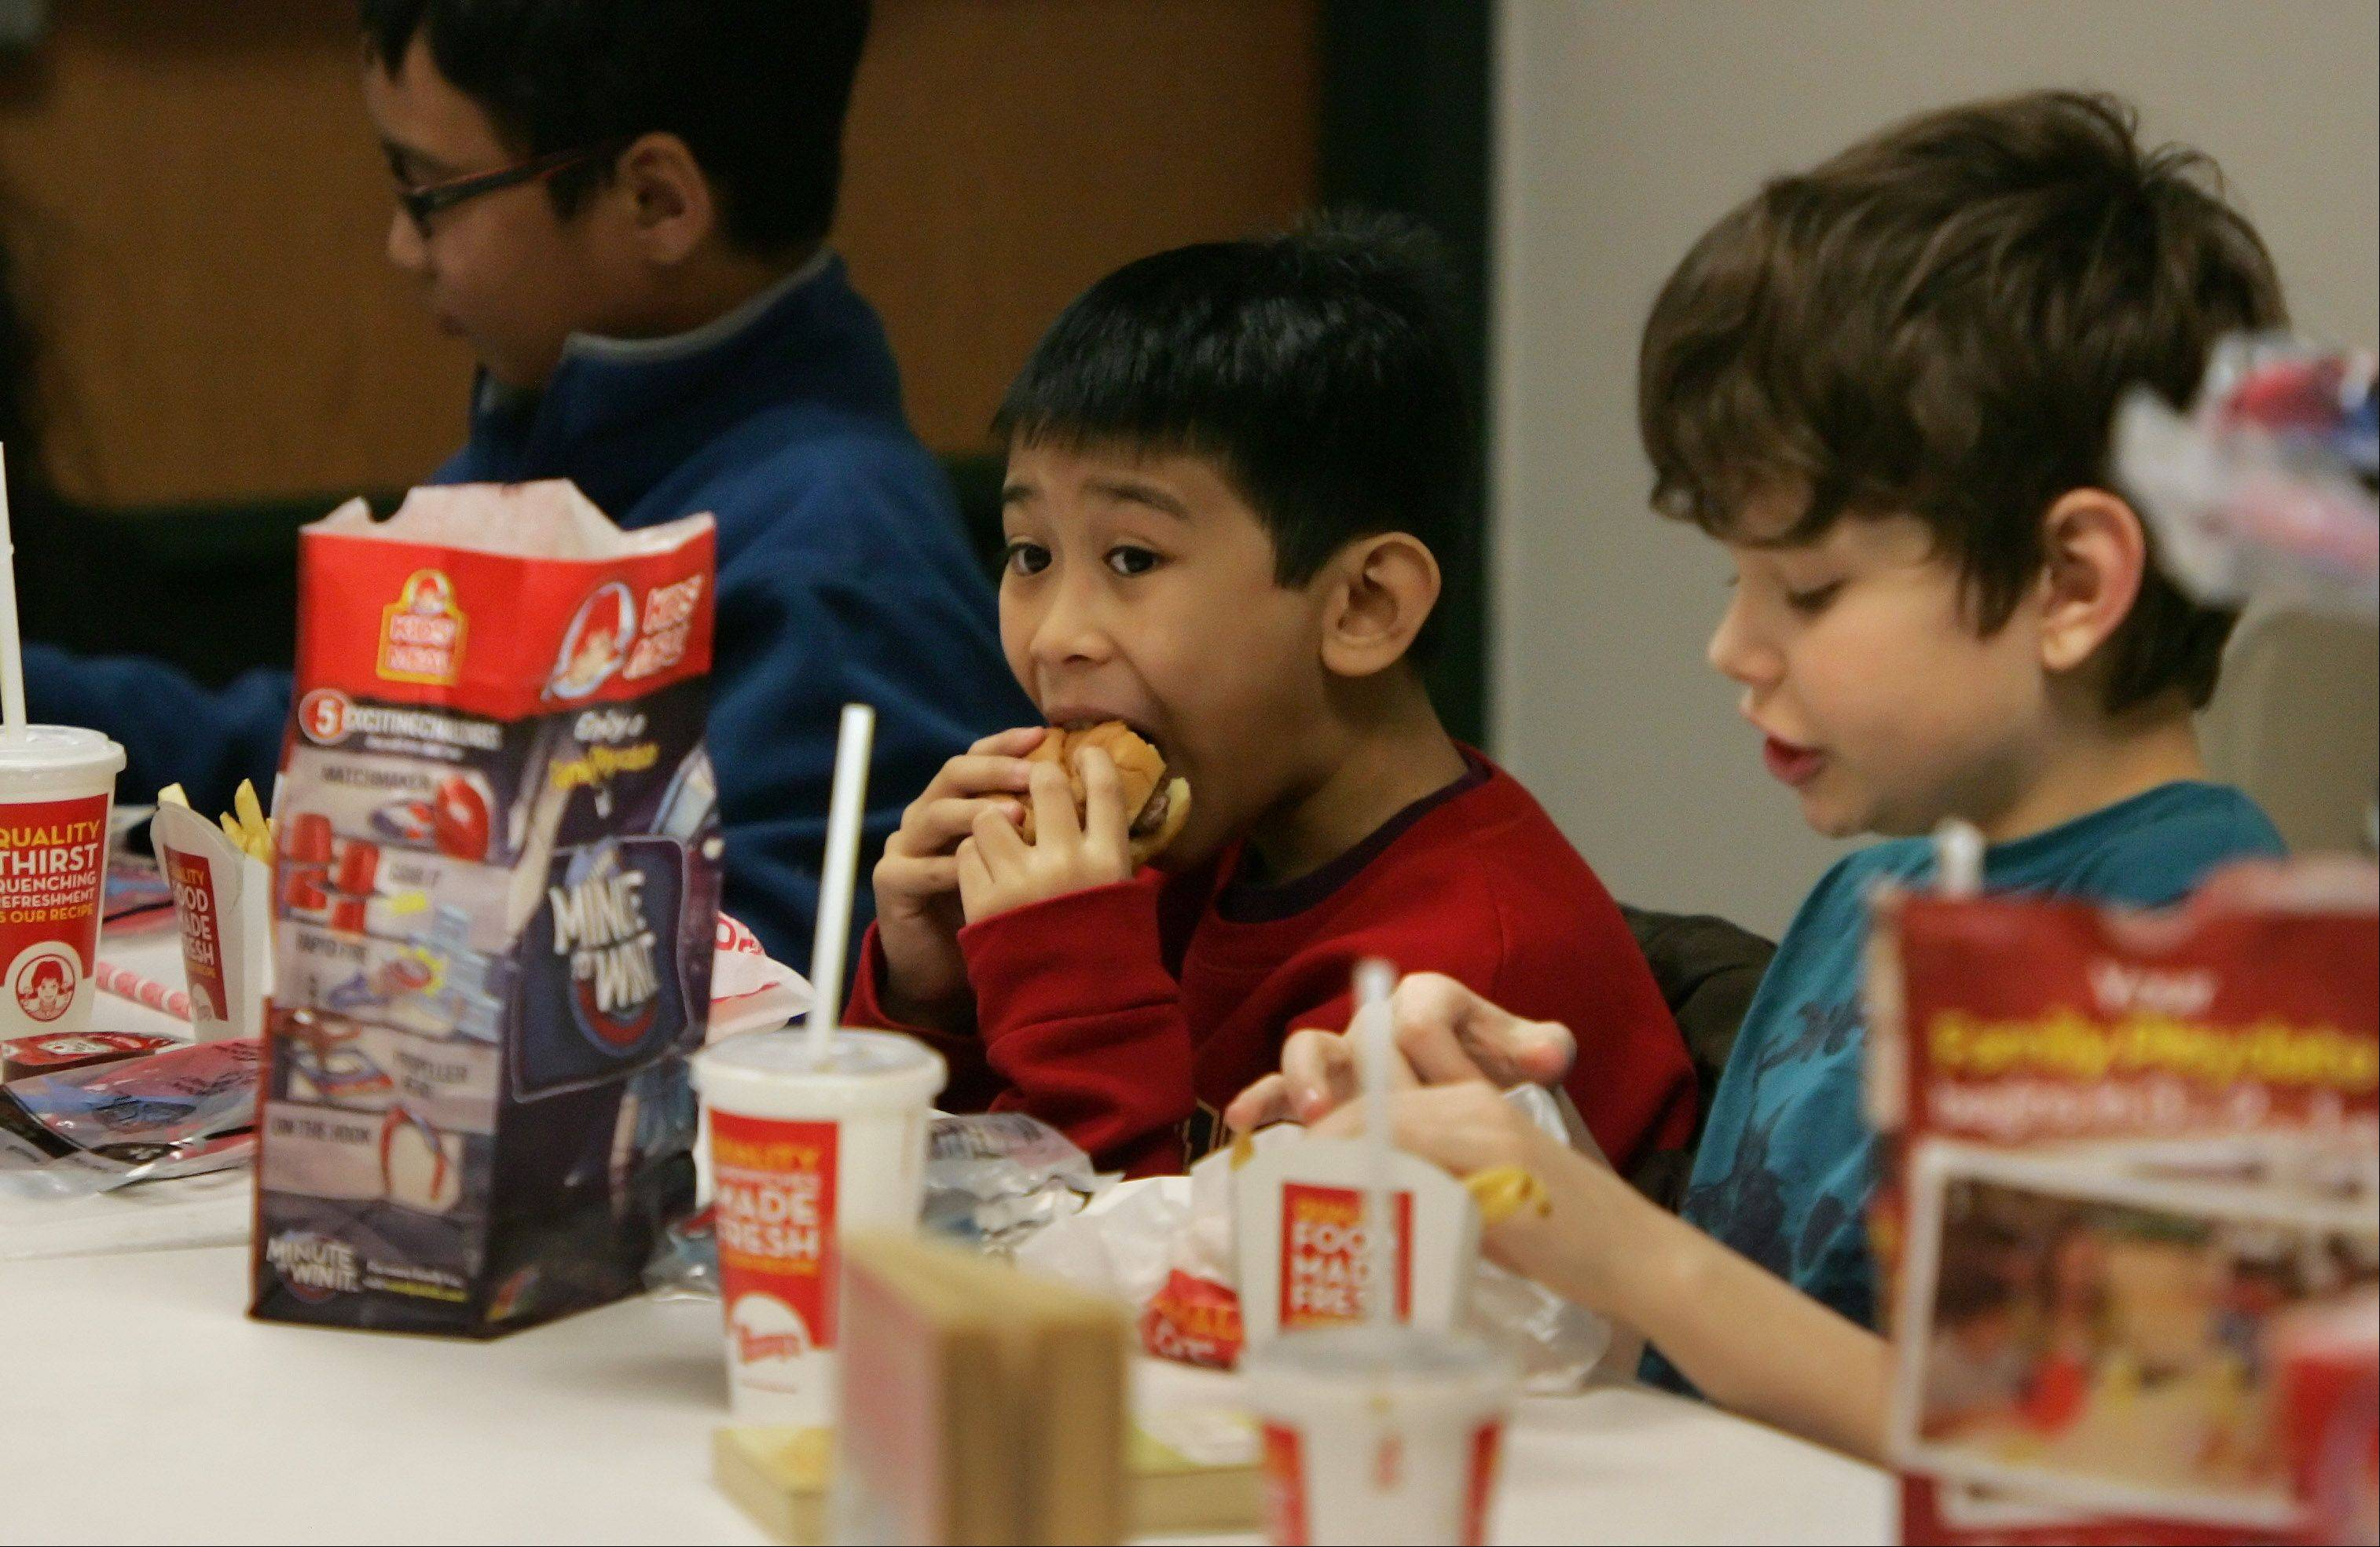 Fourth grader Gian Sarita enjoys a hamburger from Wendy's as students from Round Lake Beach Elementary School were treated to a free lunch for reading 550 books from Sept. 15 through Dec. 21 last year. The project was sponsored by the village, the Round Lake Area Exchange Club and Round Lake School District 116.